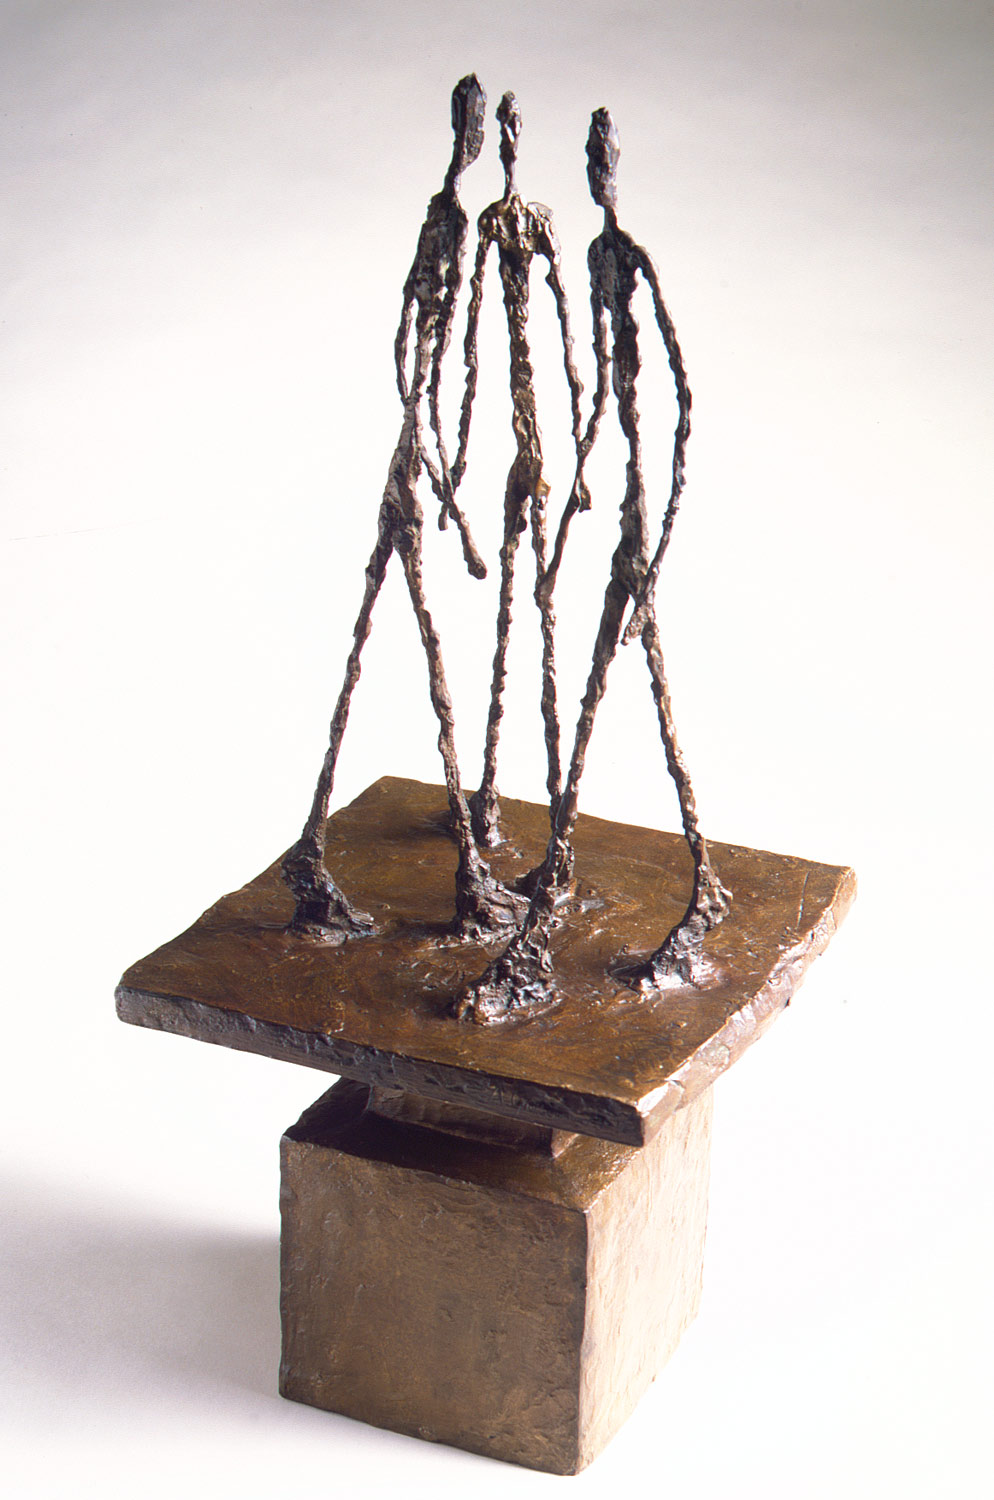 Alberto Giacometti,  Three Men Walking II,  1949, bronze, 30 1/8 x 13 x 12 3/4 in.  https://www.metmuseum.org/toah/works-of-art/1999.363.22/